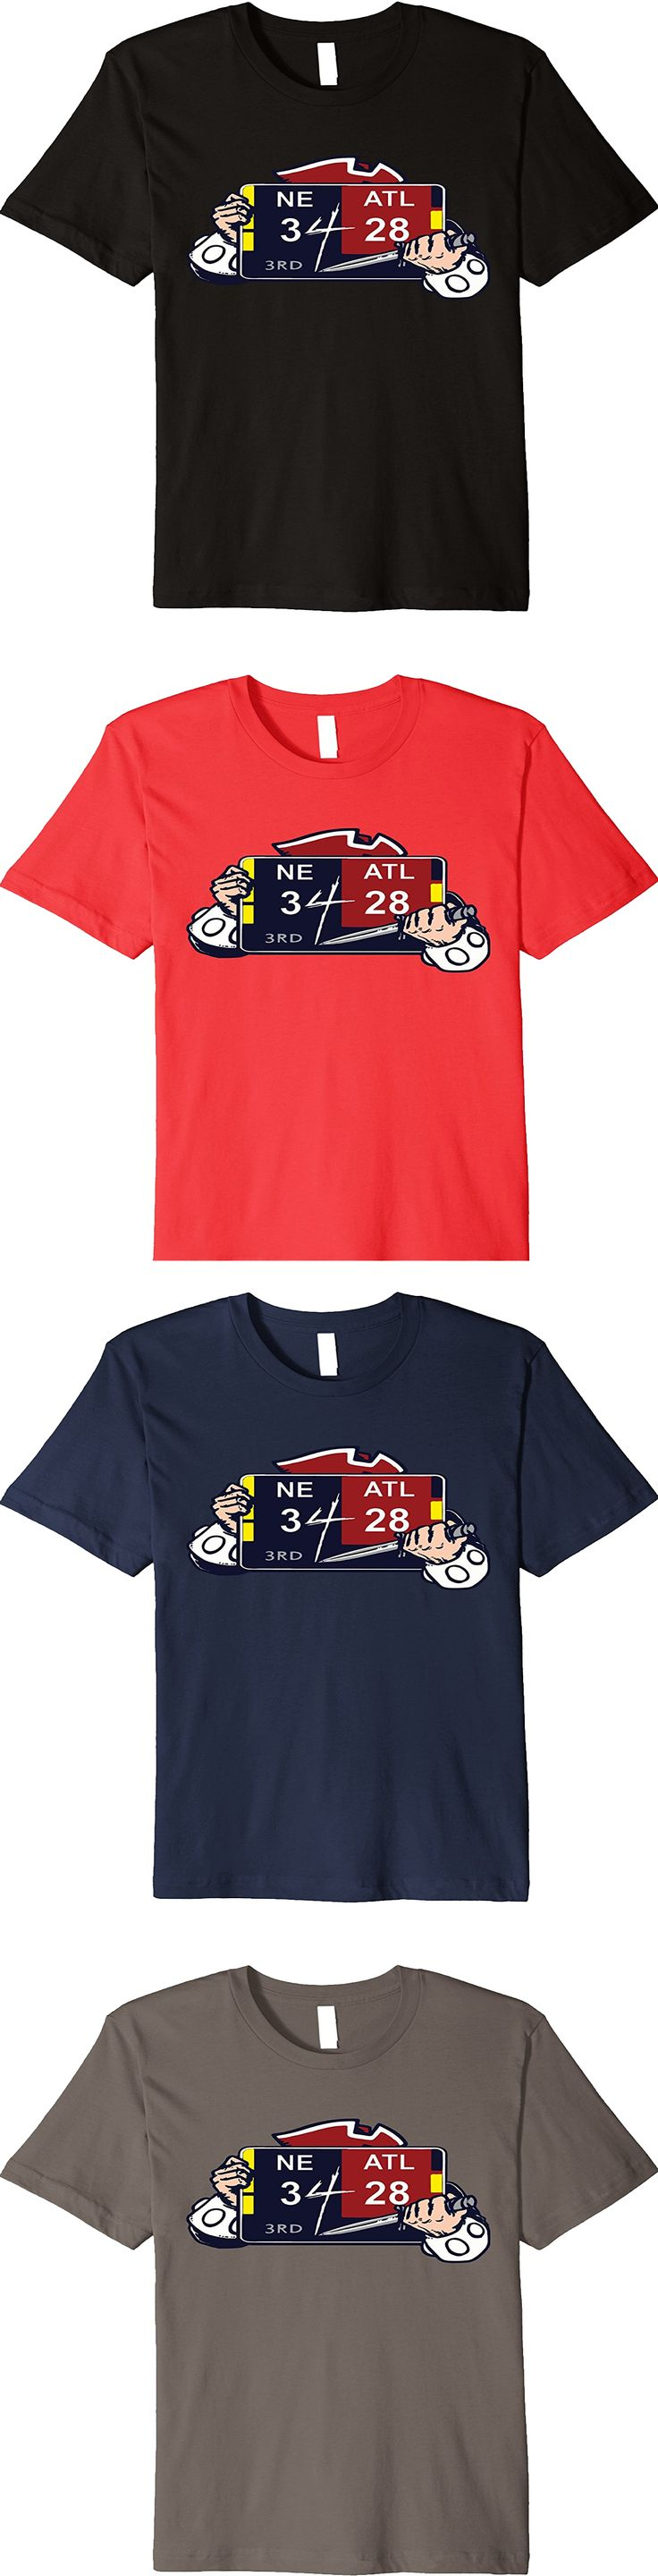 Premium New England Patriots NE 3 ATL 28 Final Score T-Shirt. Available in 5 different colors. Get yours today on Amazon.